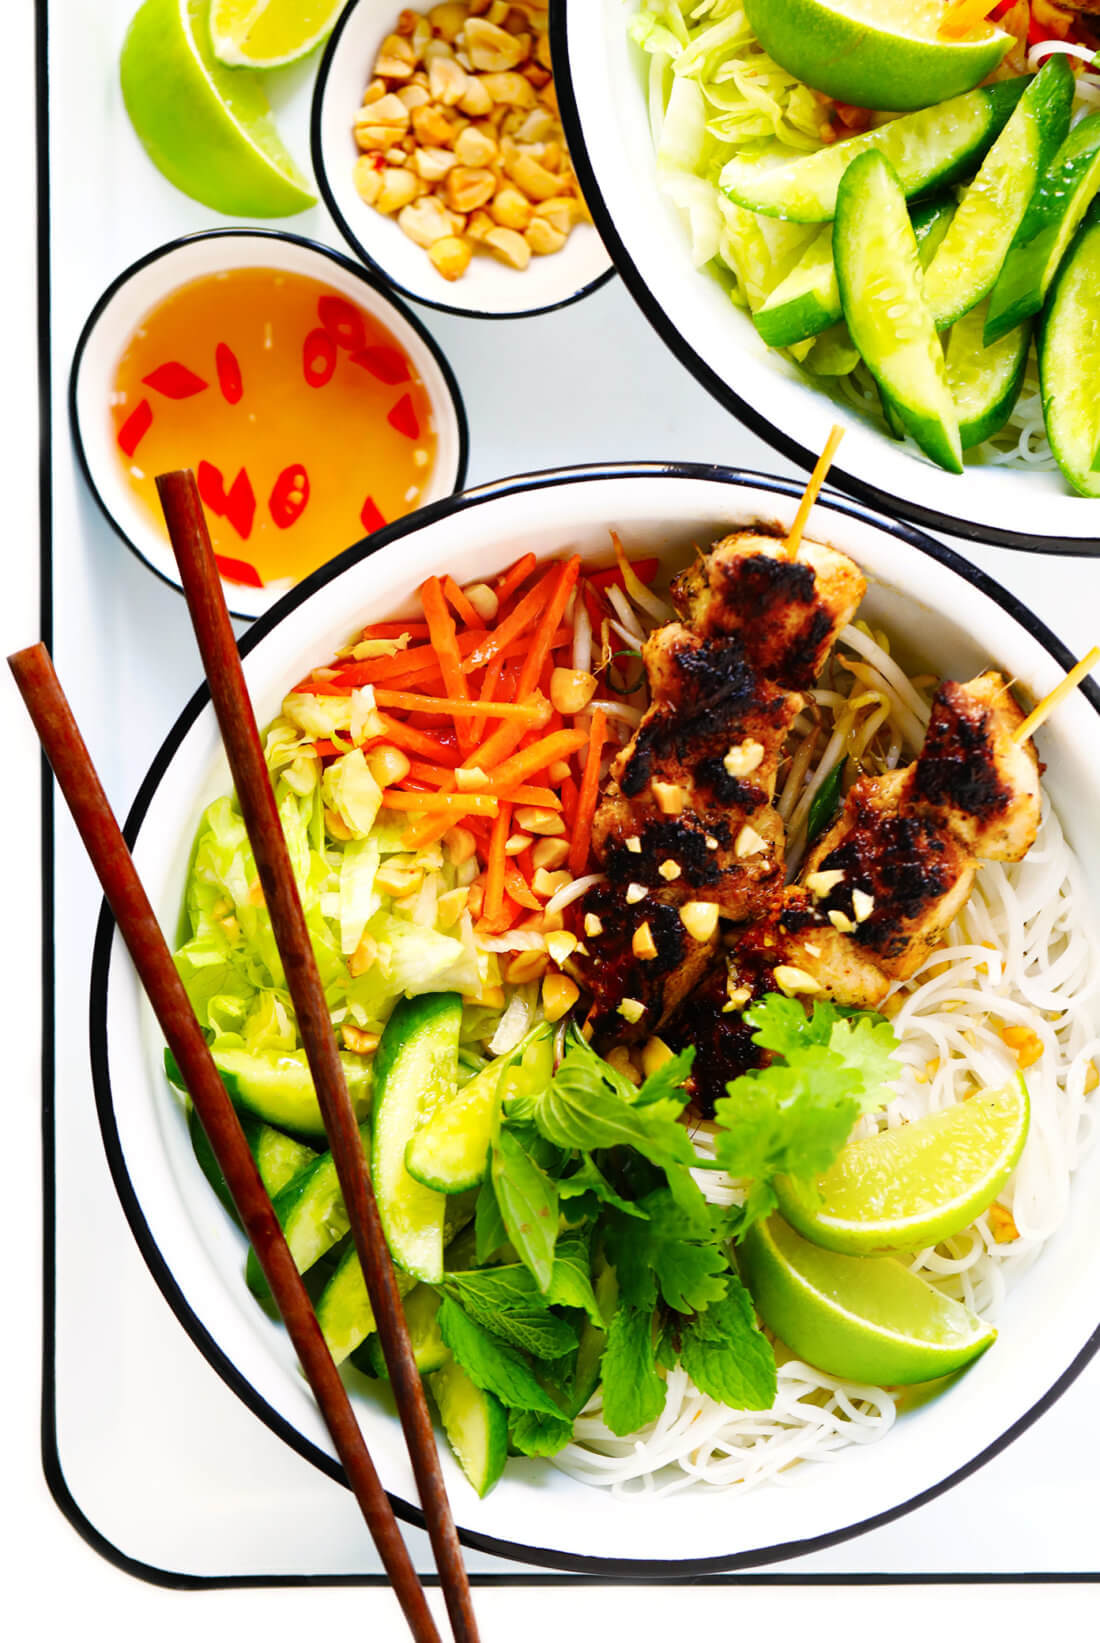 Vietnamese Bun Recipe (Chicken Noodle Bowls with Nuoc Cham)